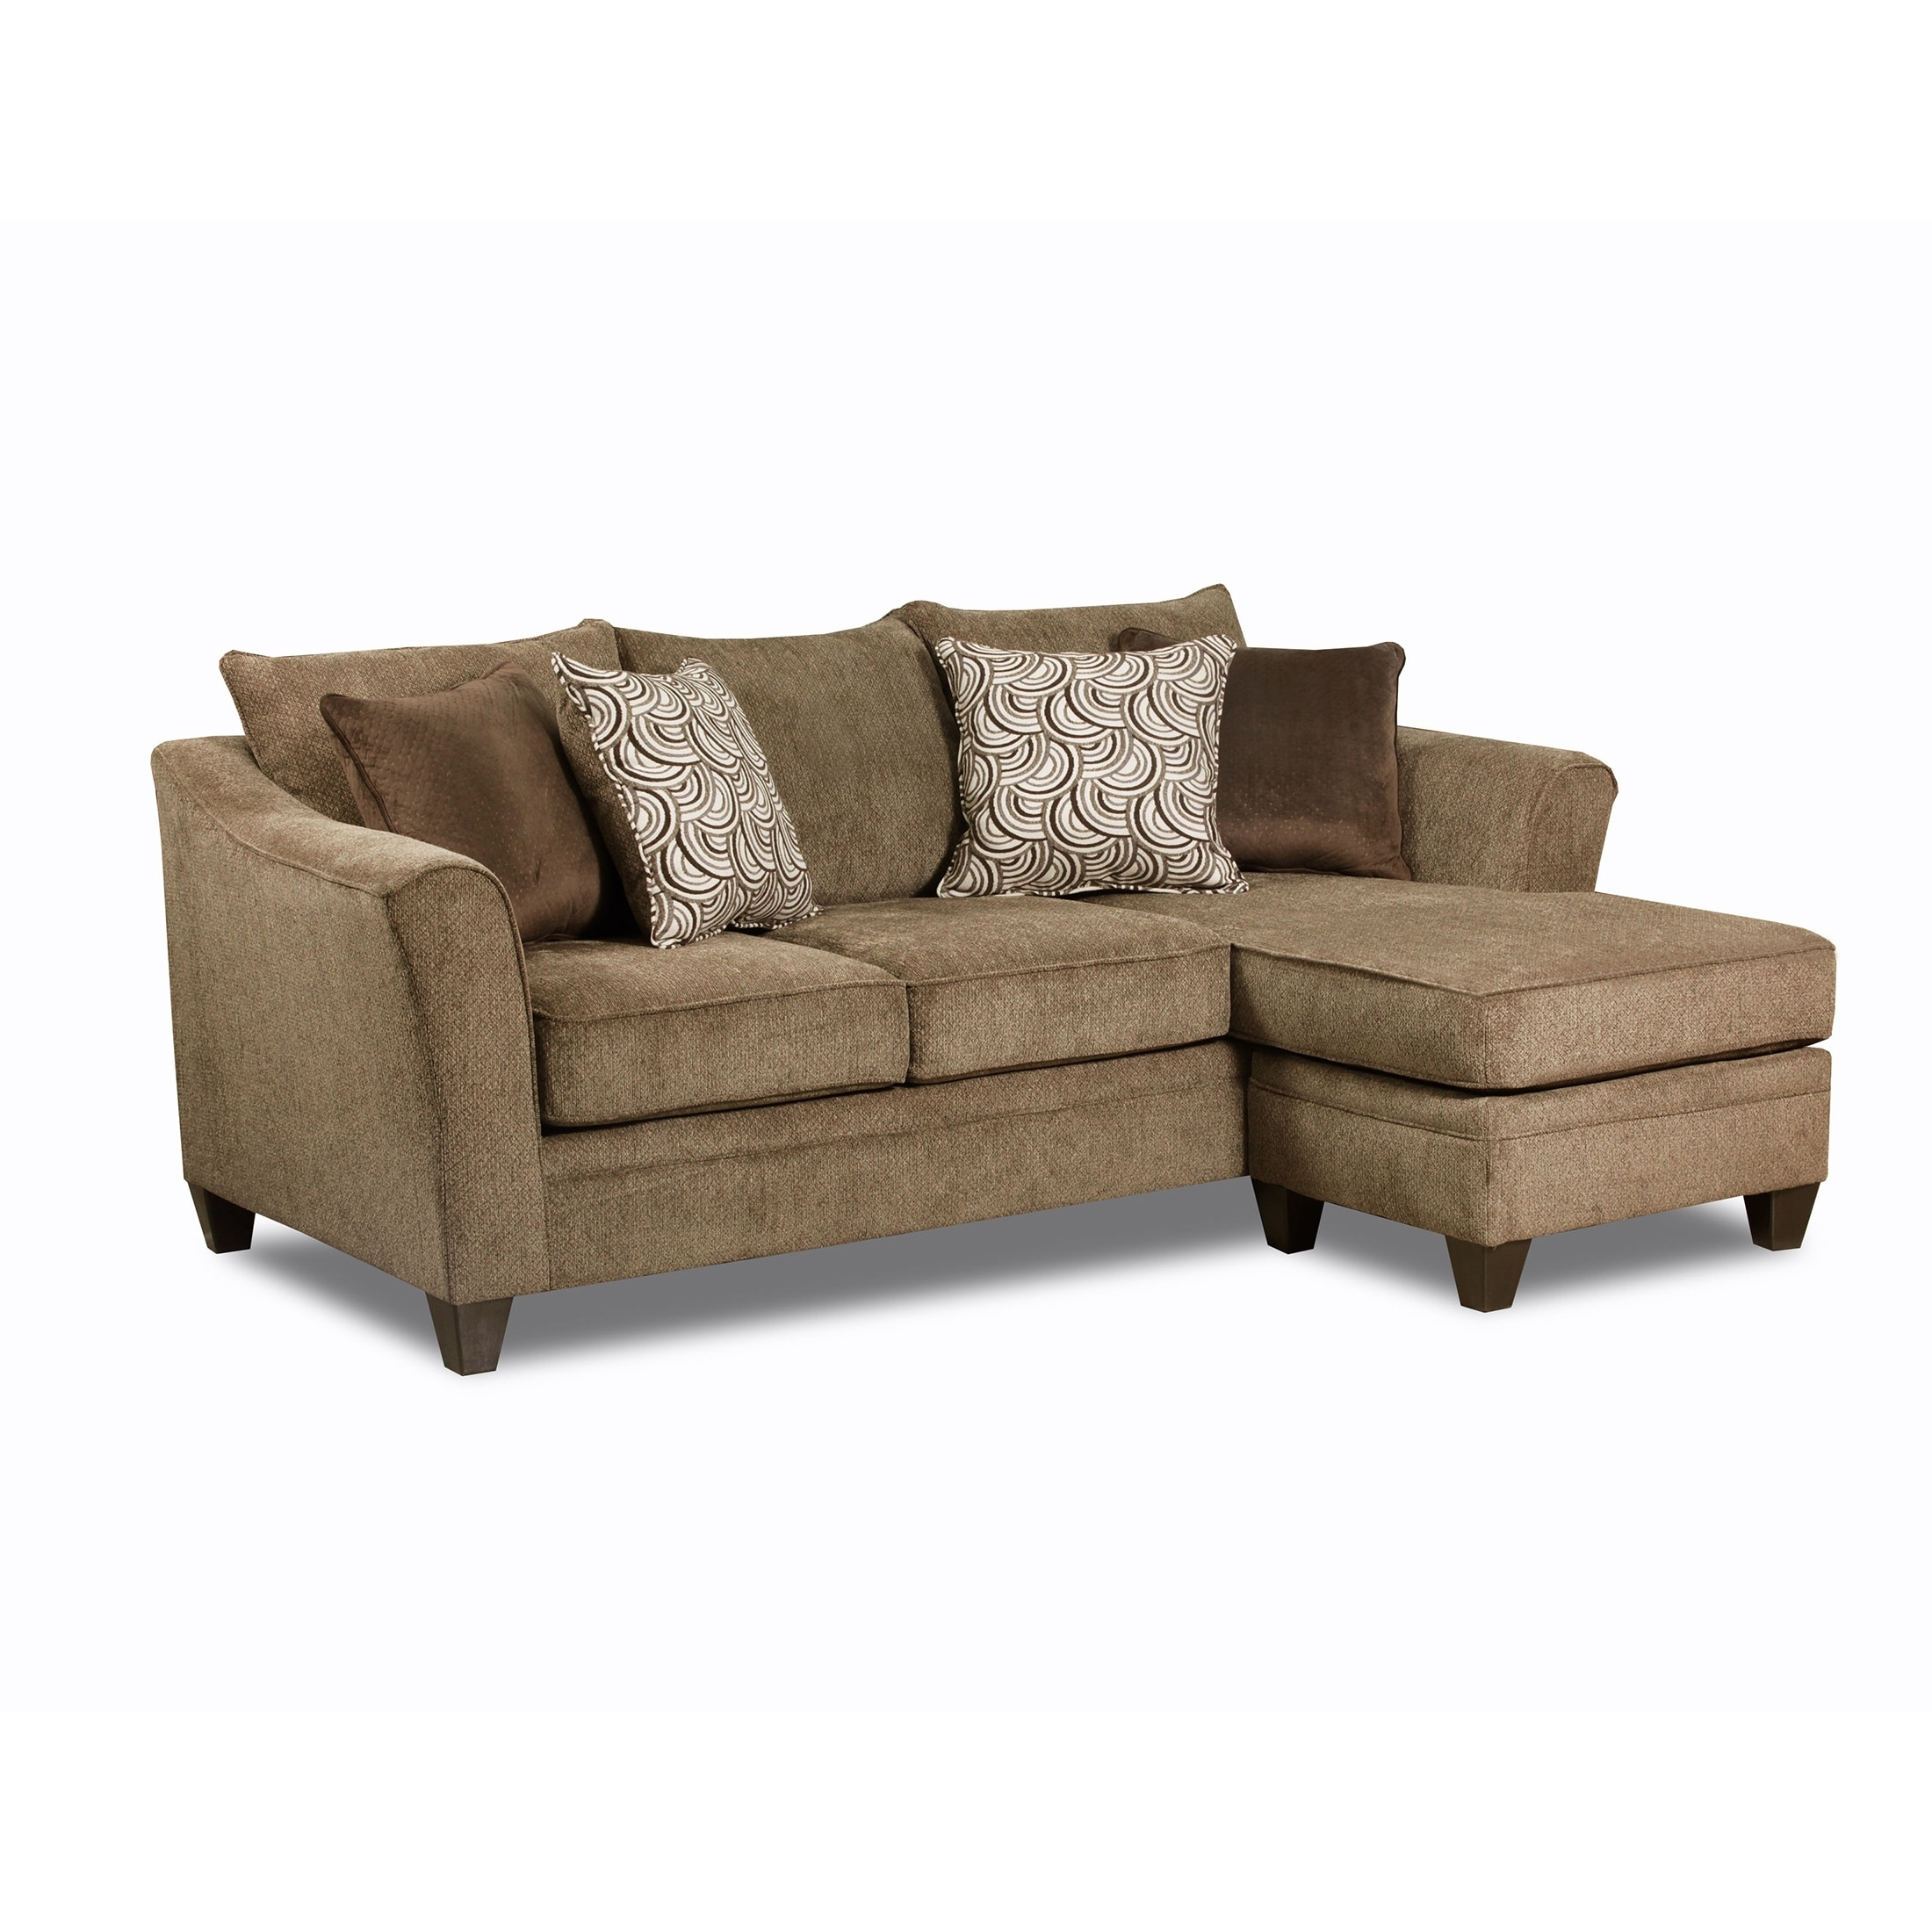 Simmons Chaise Sofas In Well Known Simmons Upholstery Albany Truffle Sofa Chaise – Free Shipping (View 12 of 20)